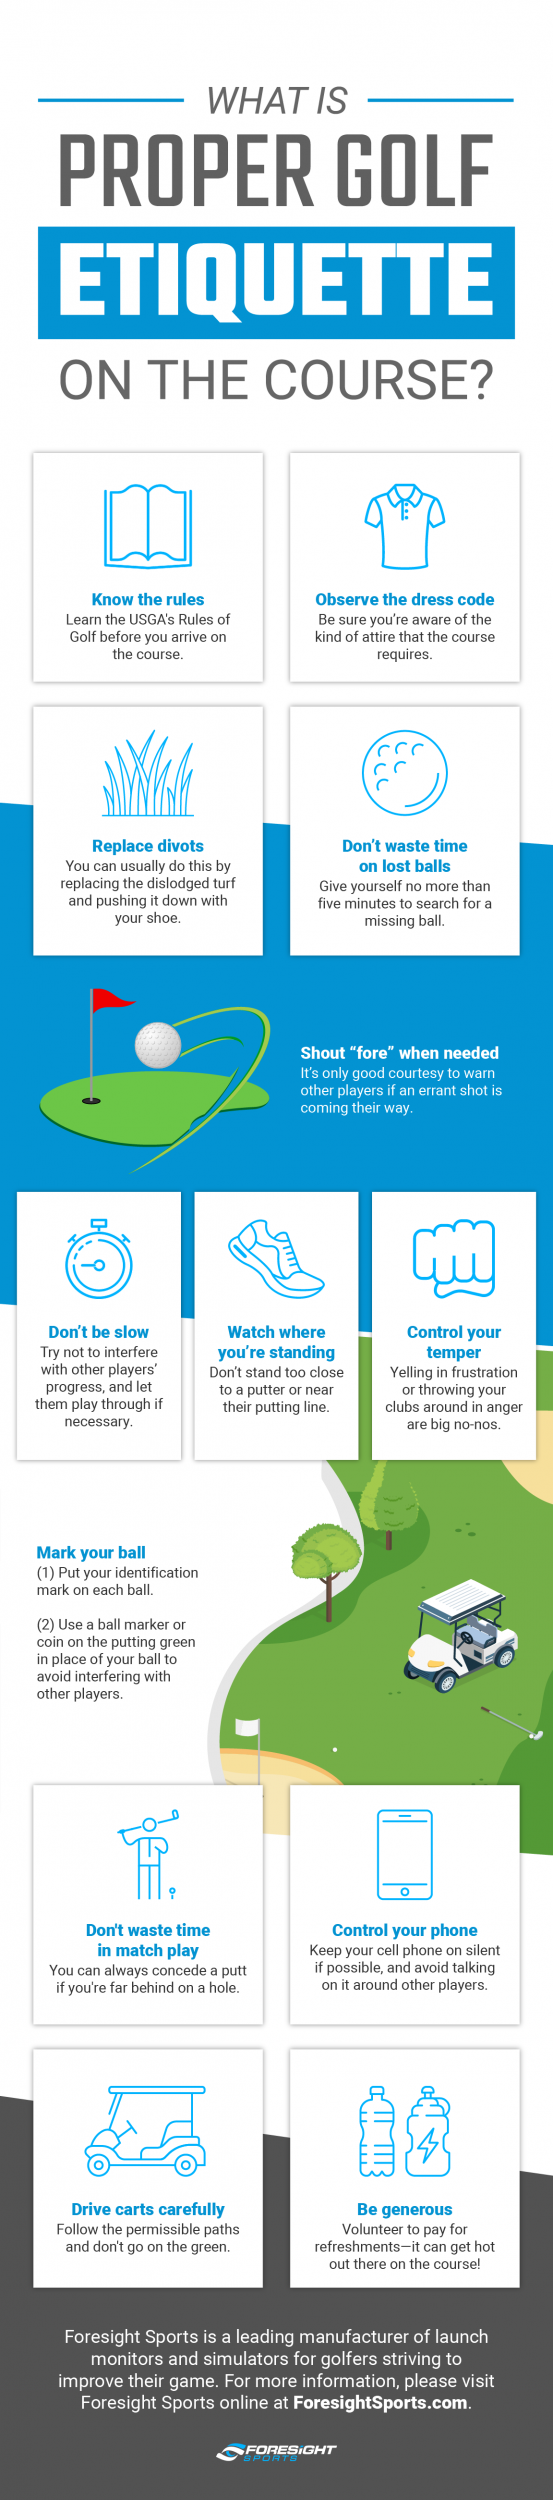 Golf Etiquette Tips (Infographic)